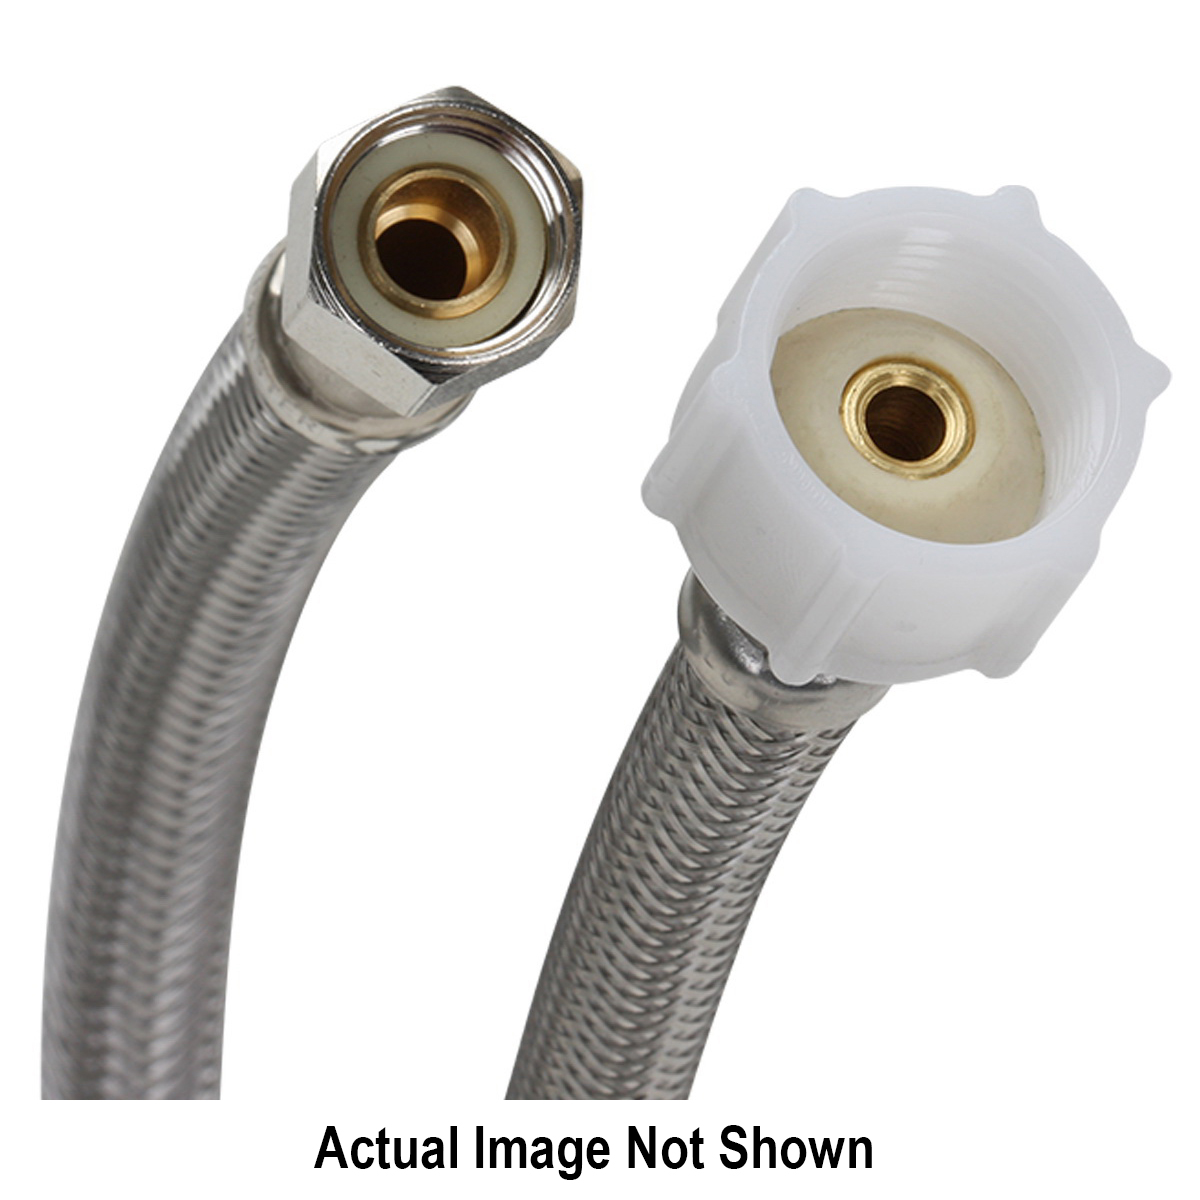 Fluidmaster® PRO SERIES™ PRO1T16 Toilet Connector With Plastic Nut, 3/8 x 7/8 in, Compression x Ballcock, 16 in L, 125 psi, 304 Stainless Steel